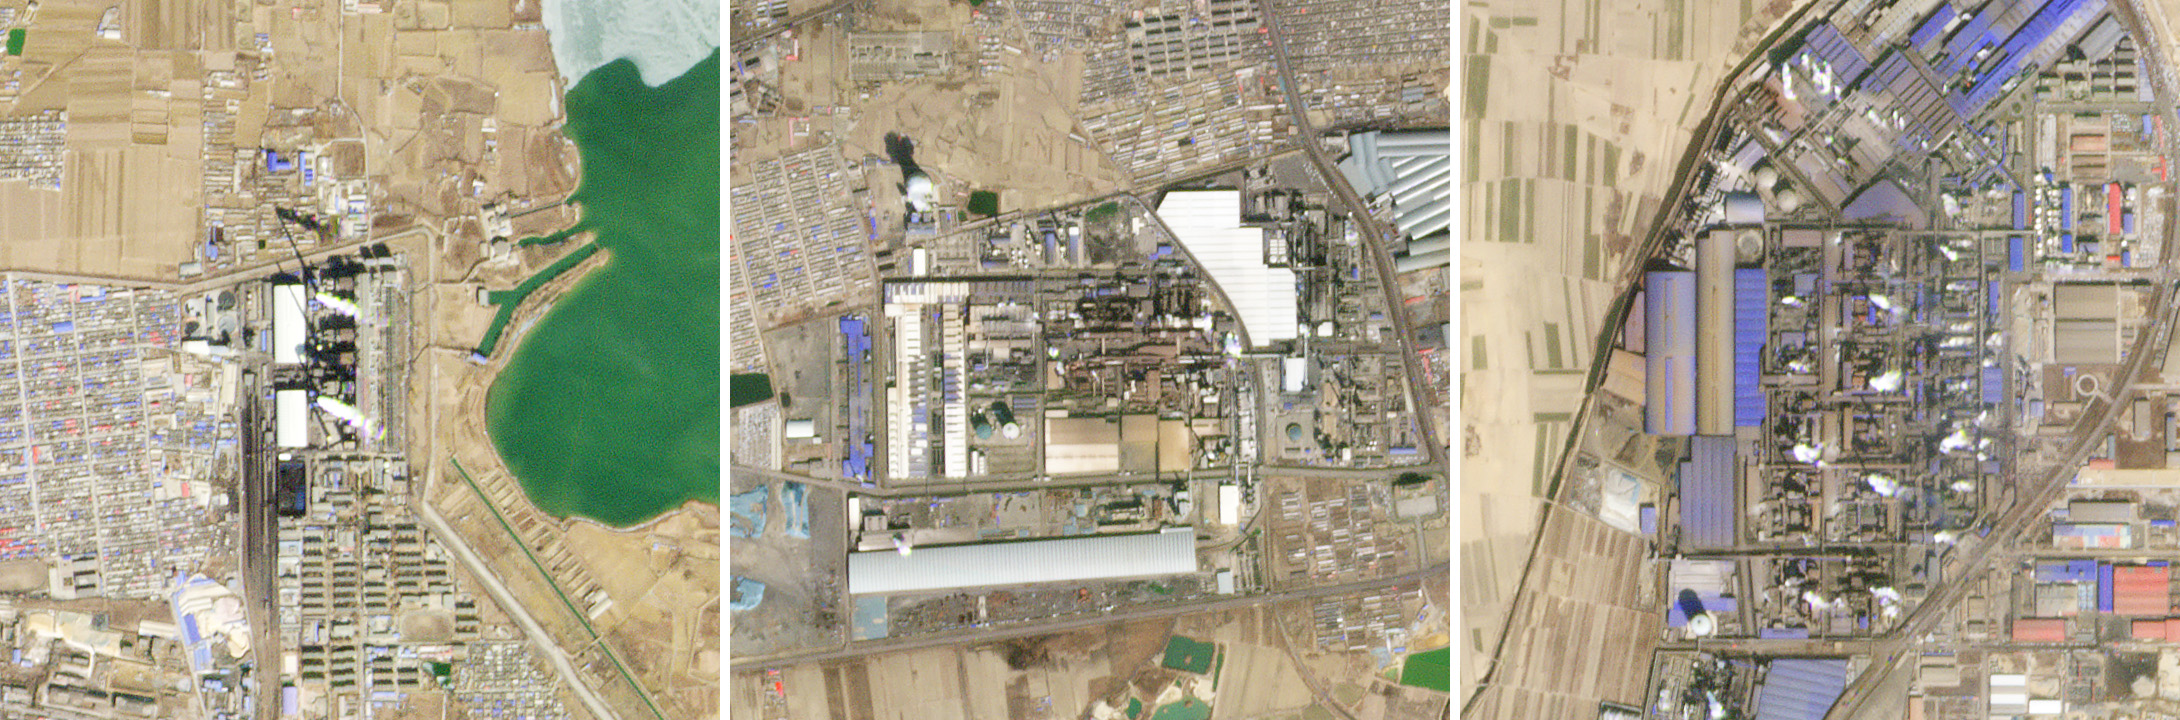 Some steel mills and power plants remain in operation around Beijing, China during the COVID-19 crisis. © 2020, Planet Labs Inc. All Rights Reserved.